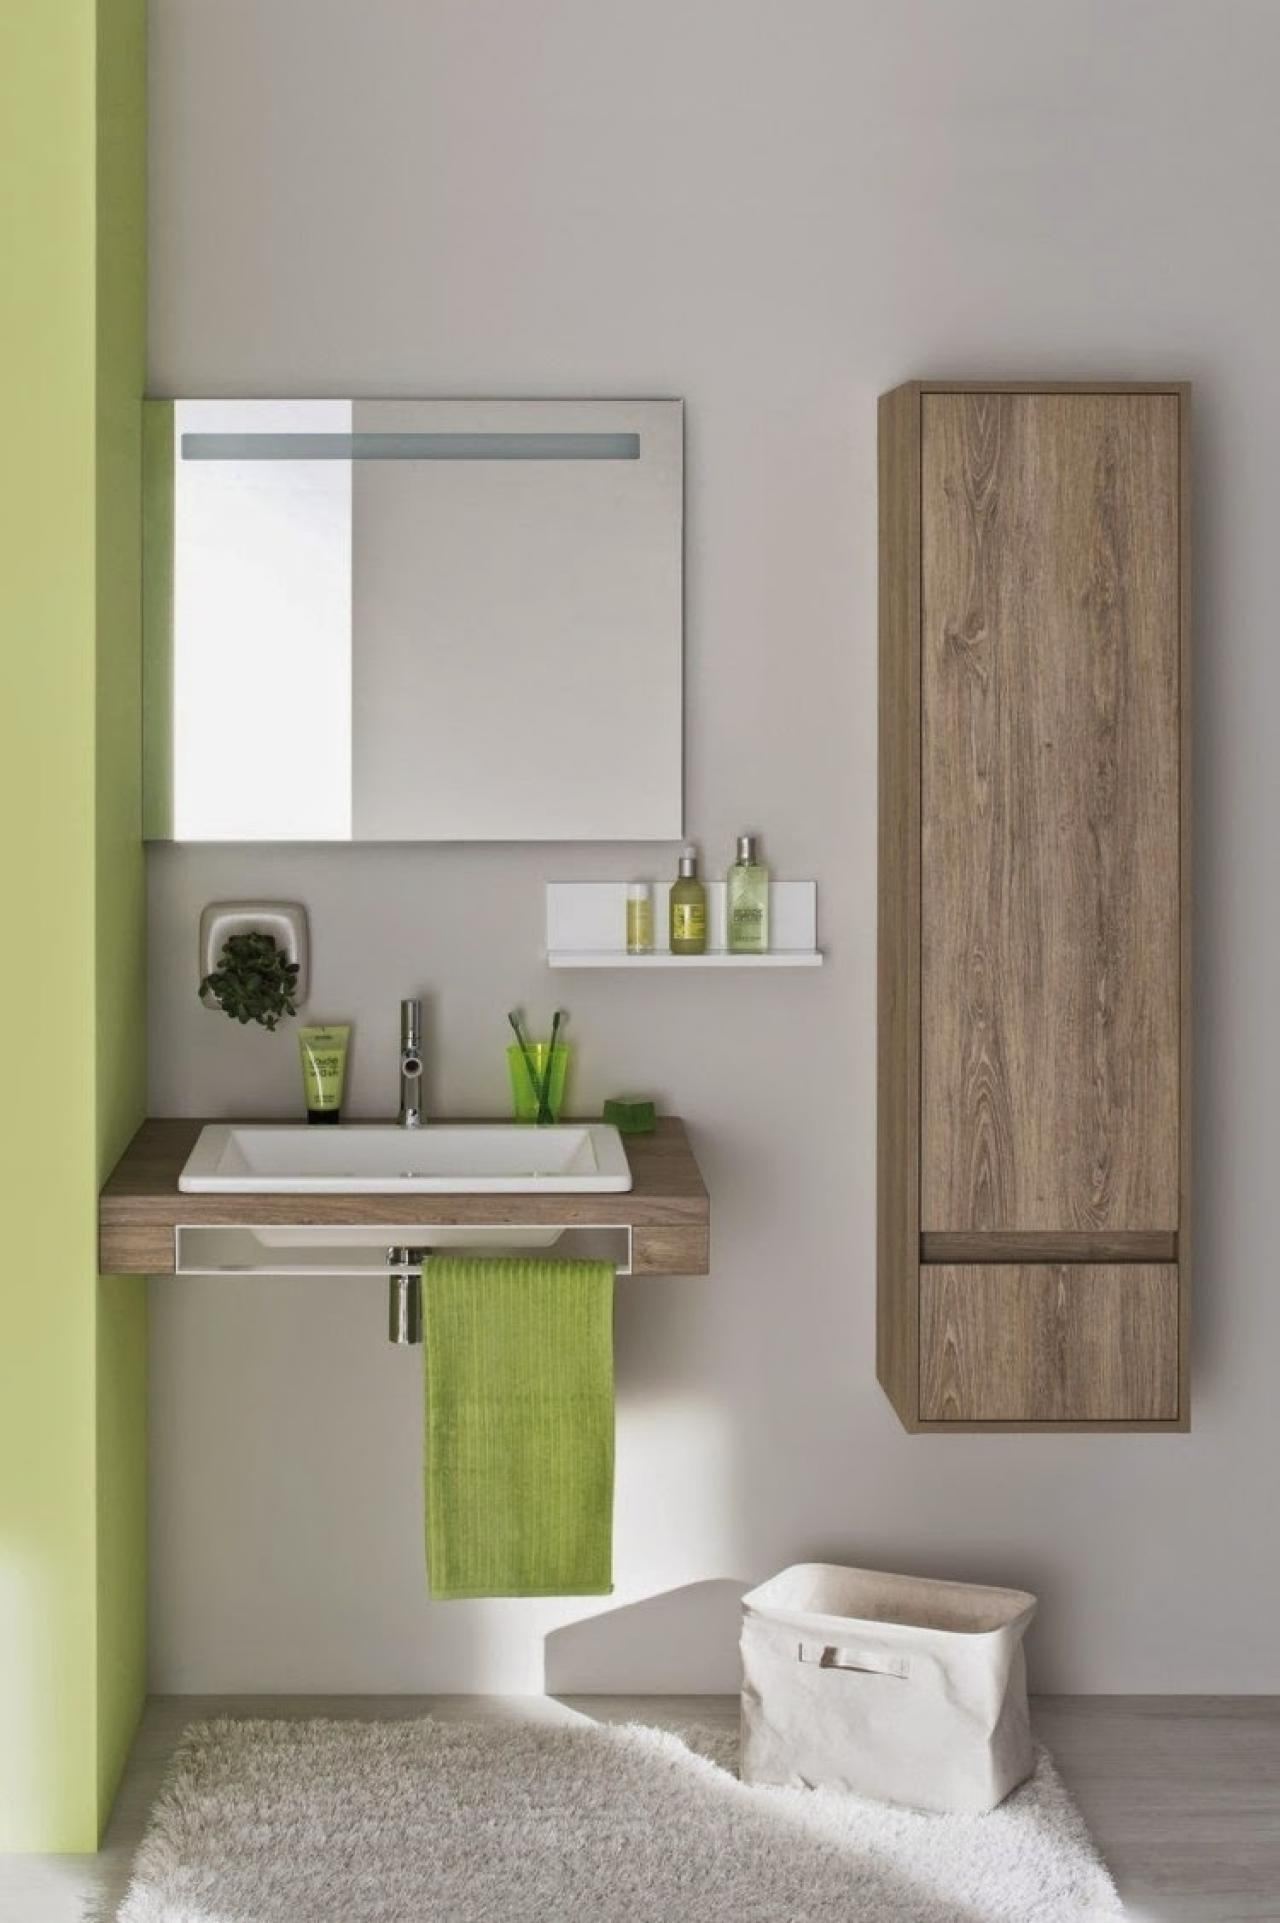 Storage Cabinets For Small Bathrooms Small Bathroom Floor Cabinet With Simple Design Home